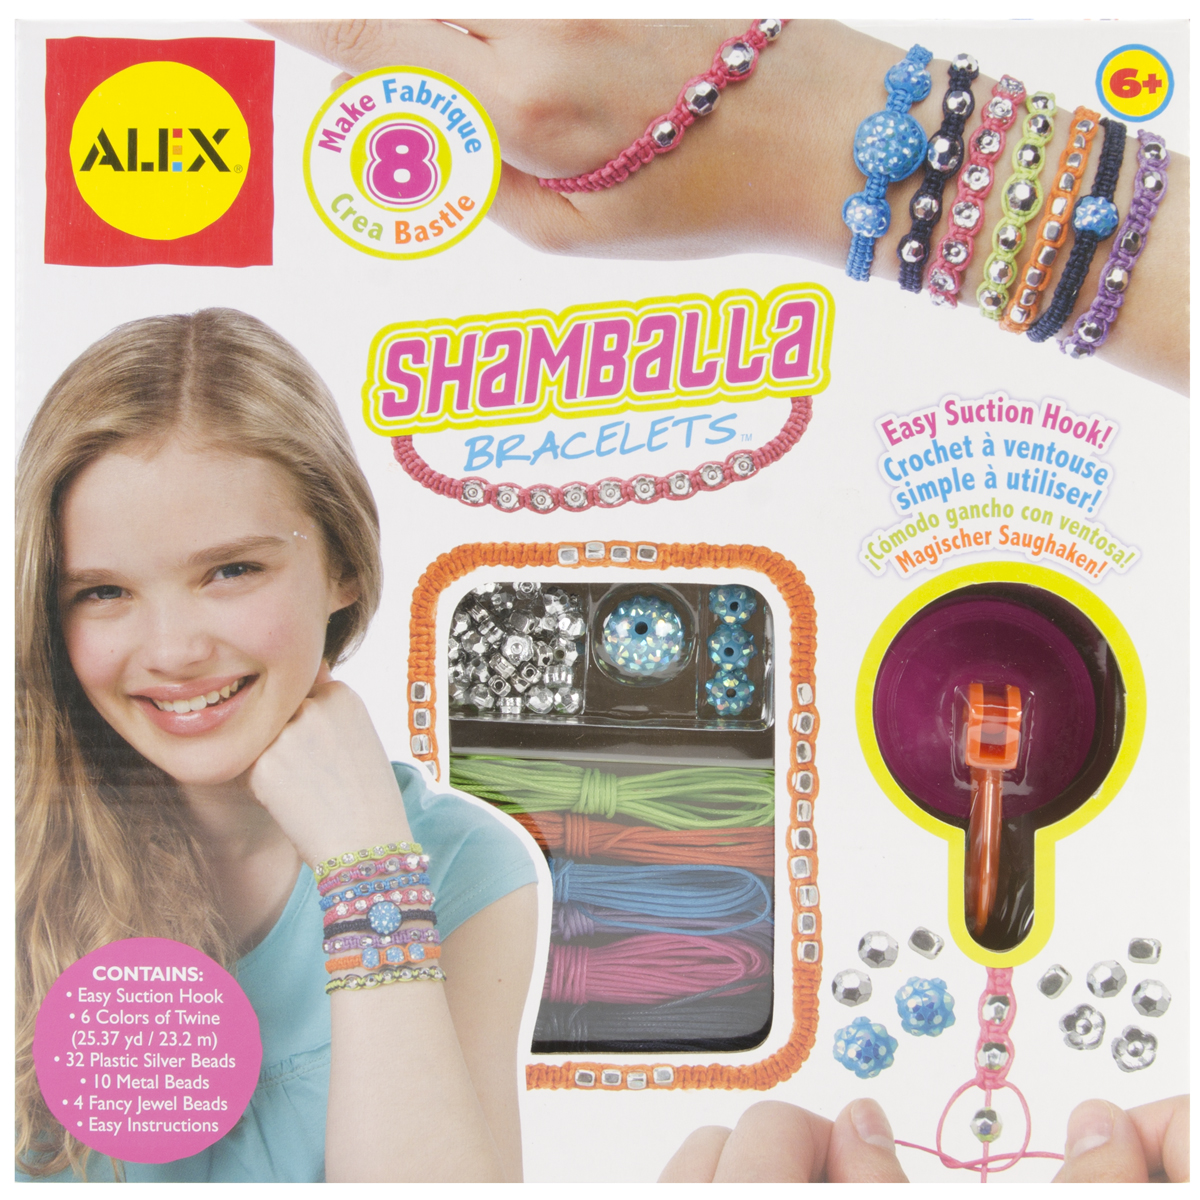 ALEX Toys Do-it-Yourself Wear Shambala Bracelets